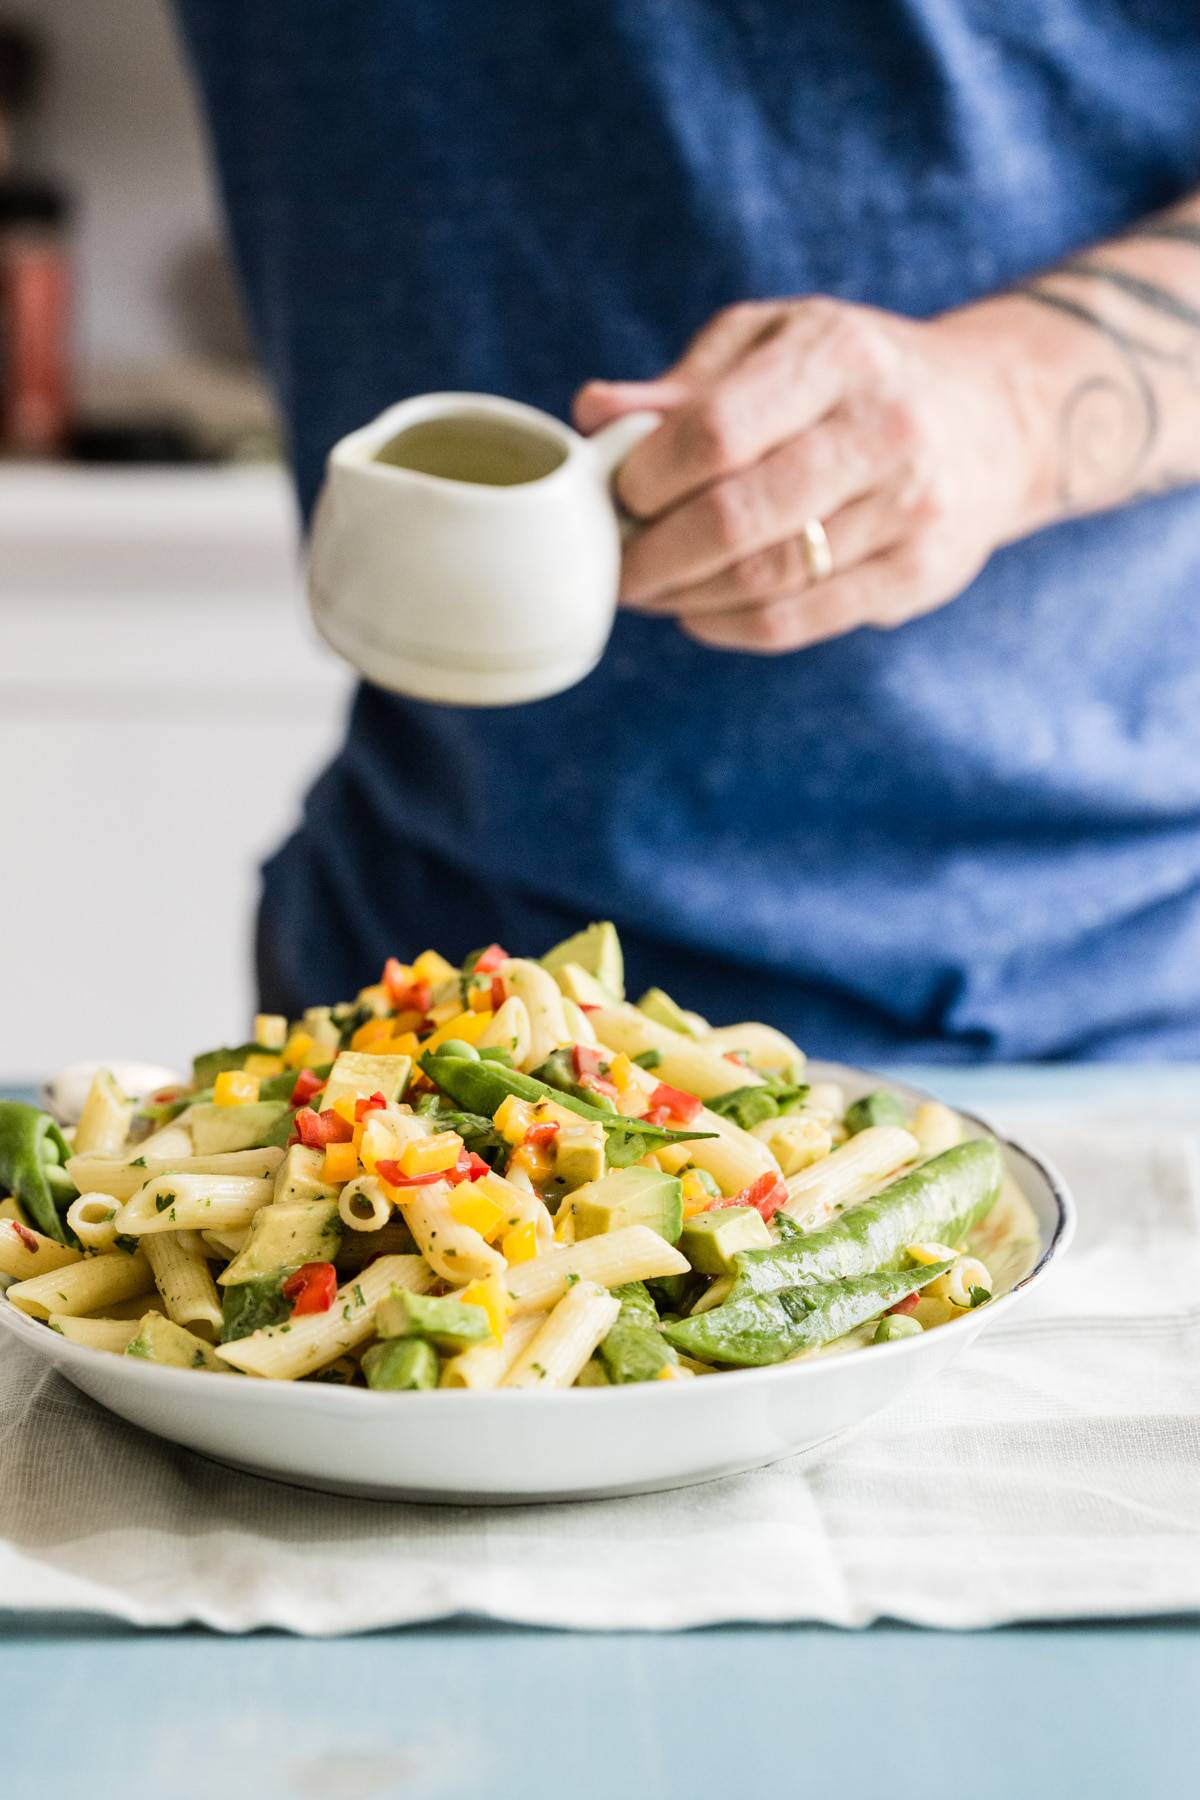 Avocado pasta salad with snow peas